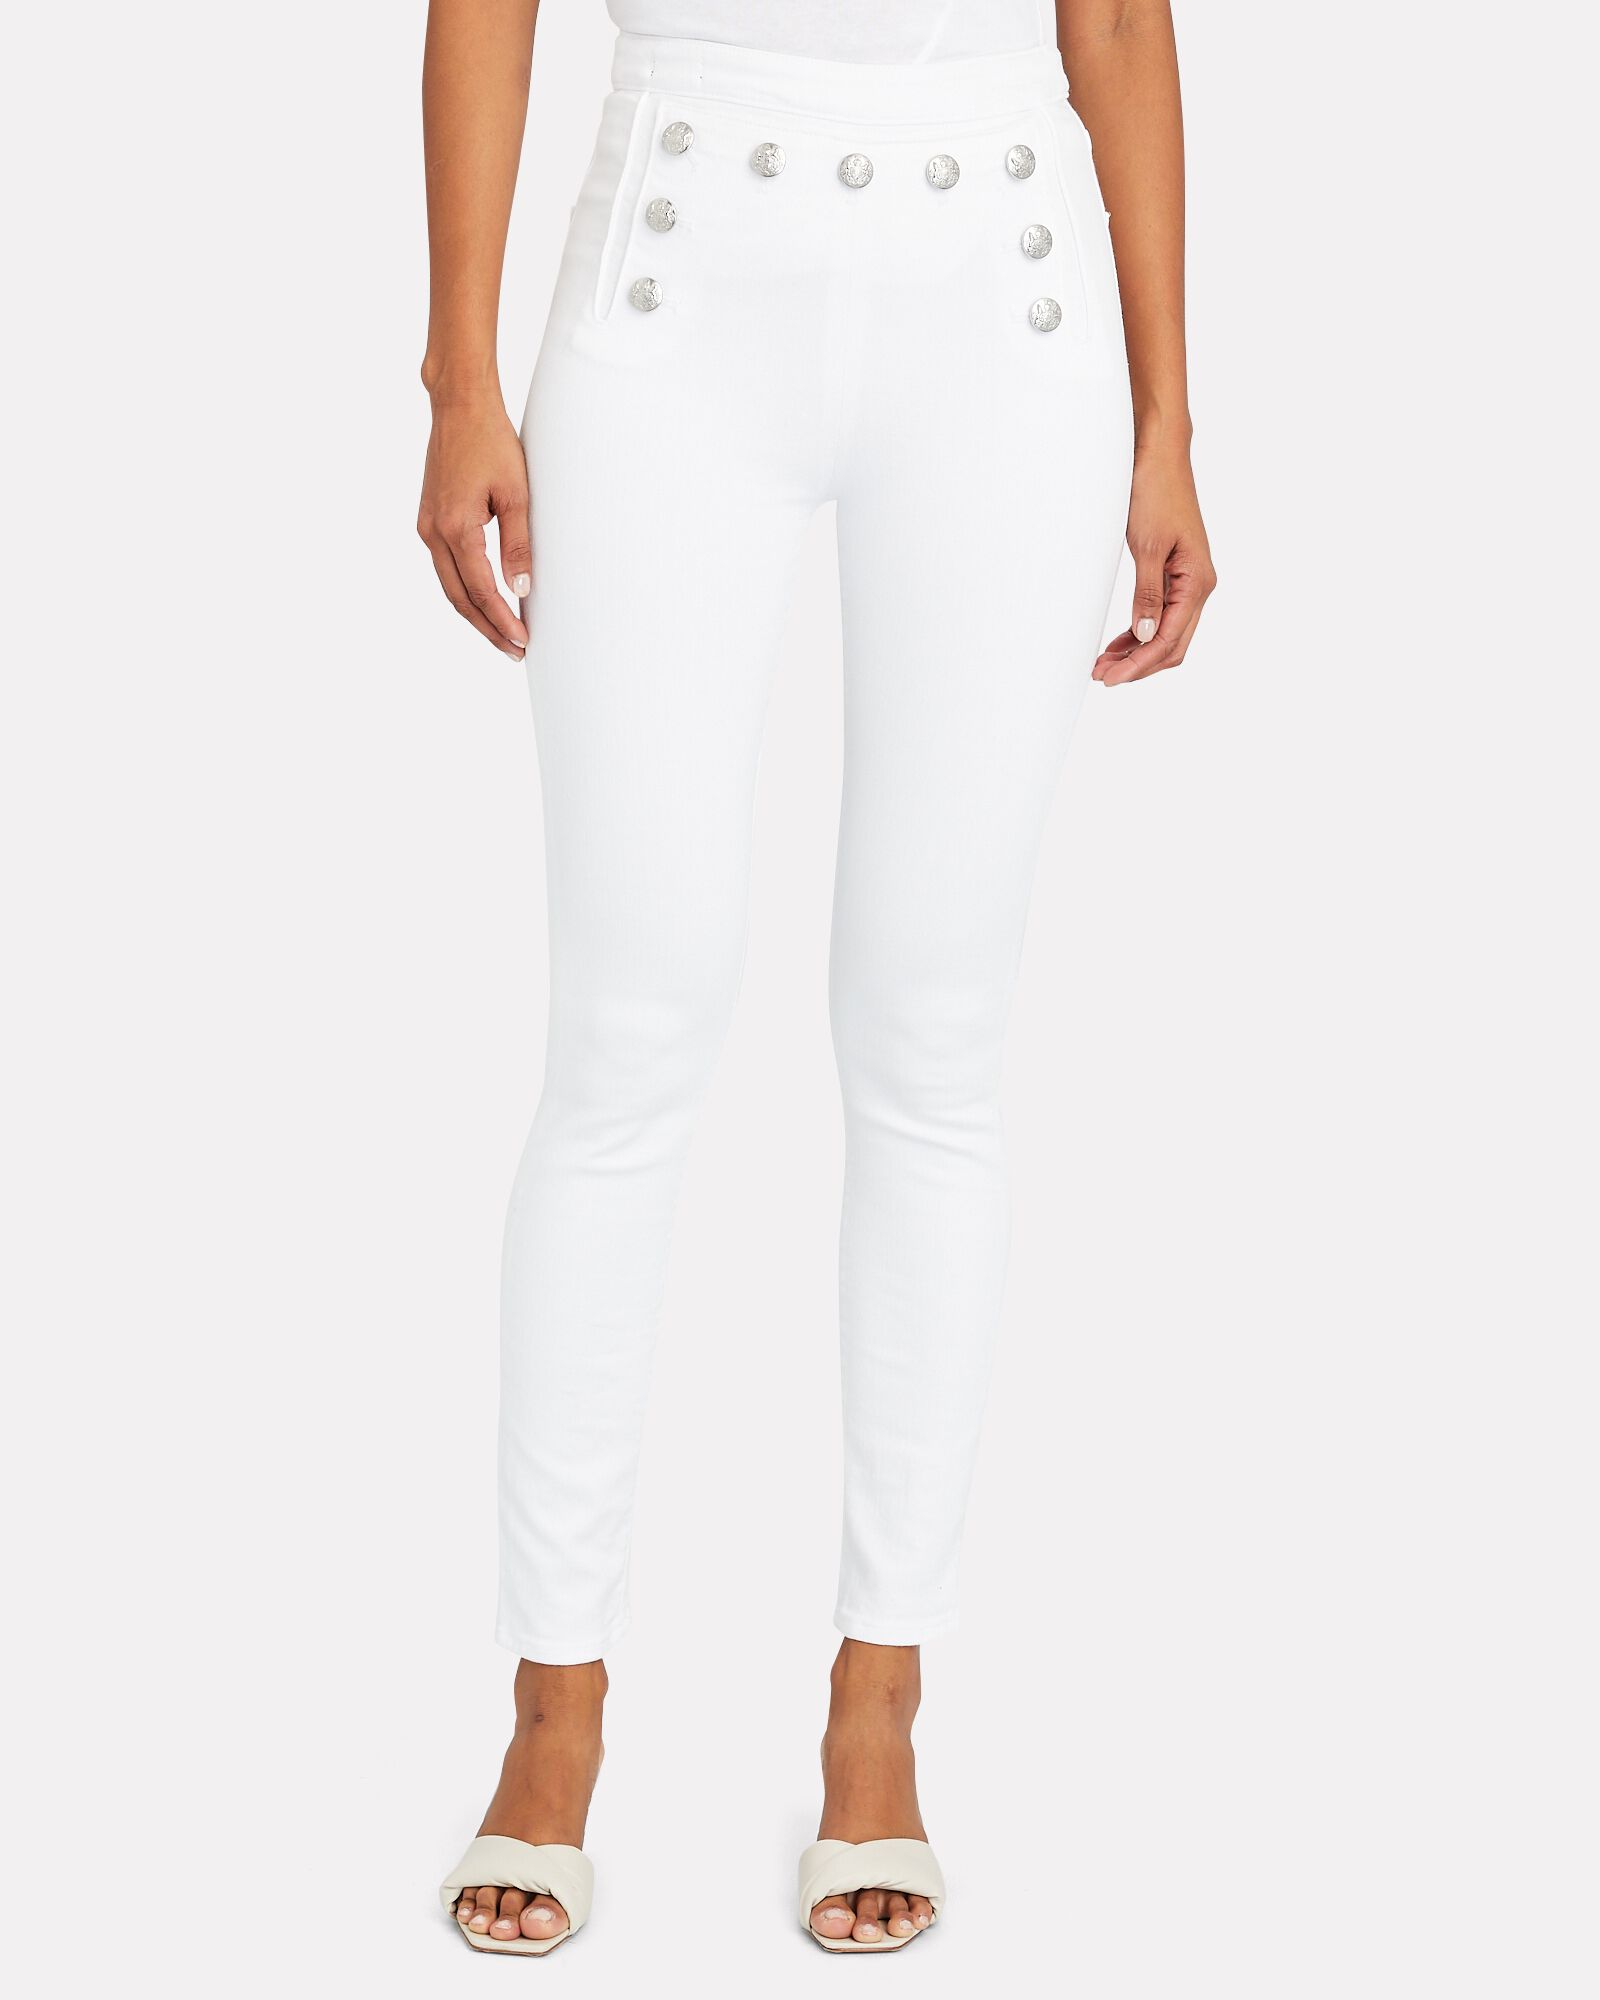 Jane Sailor Skinny Jeans, WHITE, hi-res